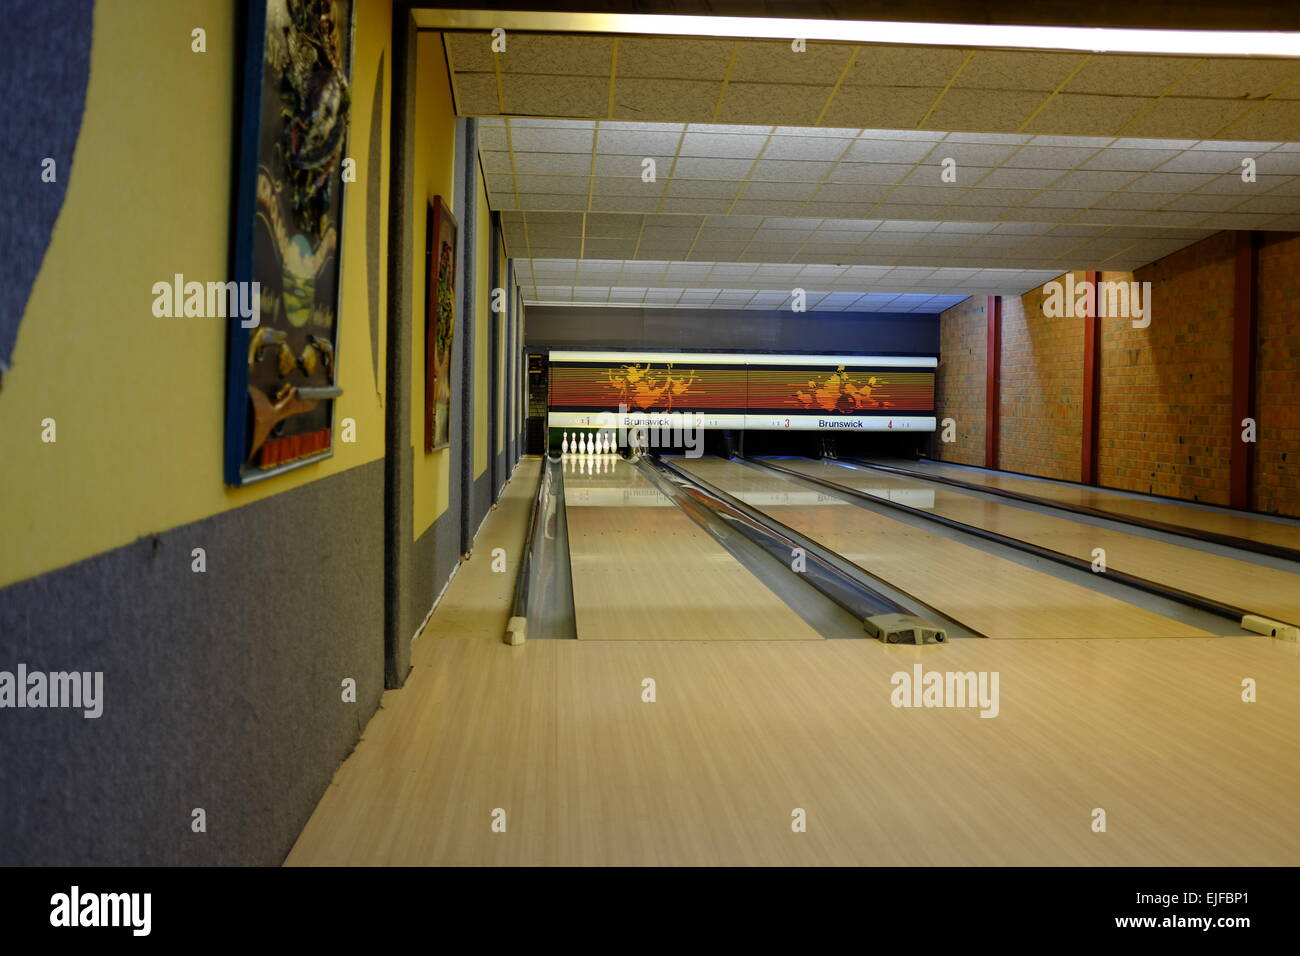 Bowling Alley at In den Stallen, Winschoten, Netherlands - Stock Image